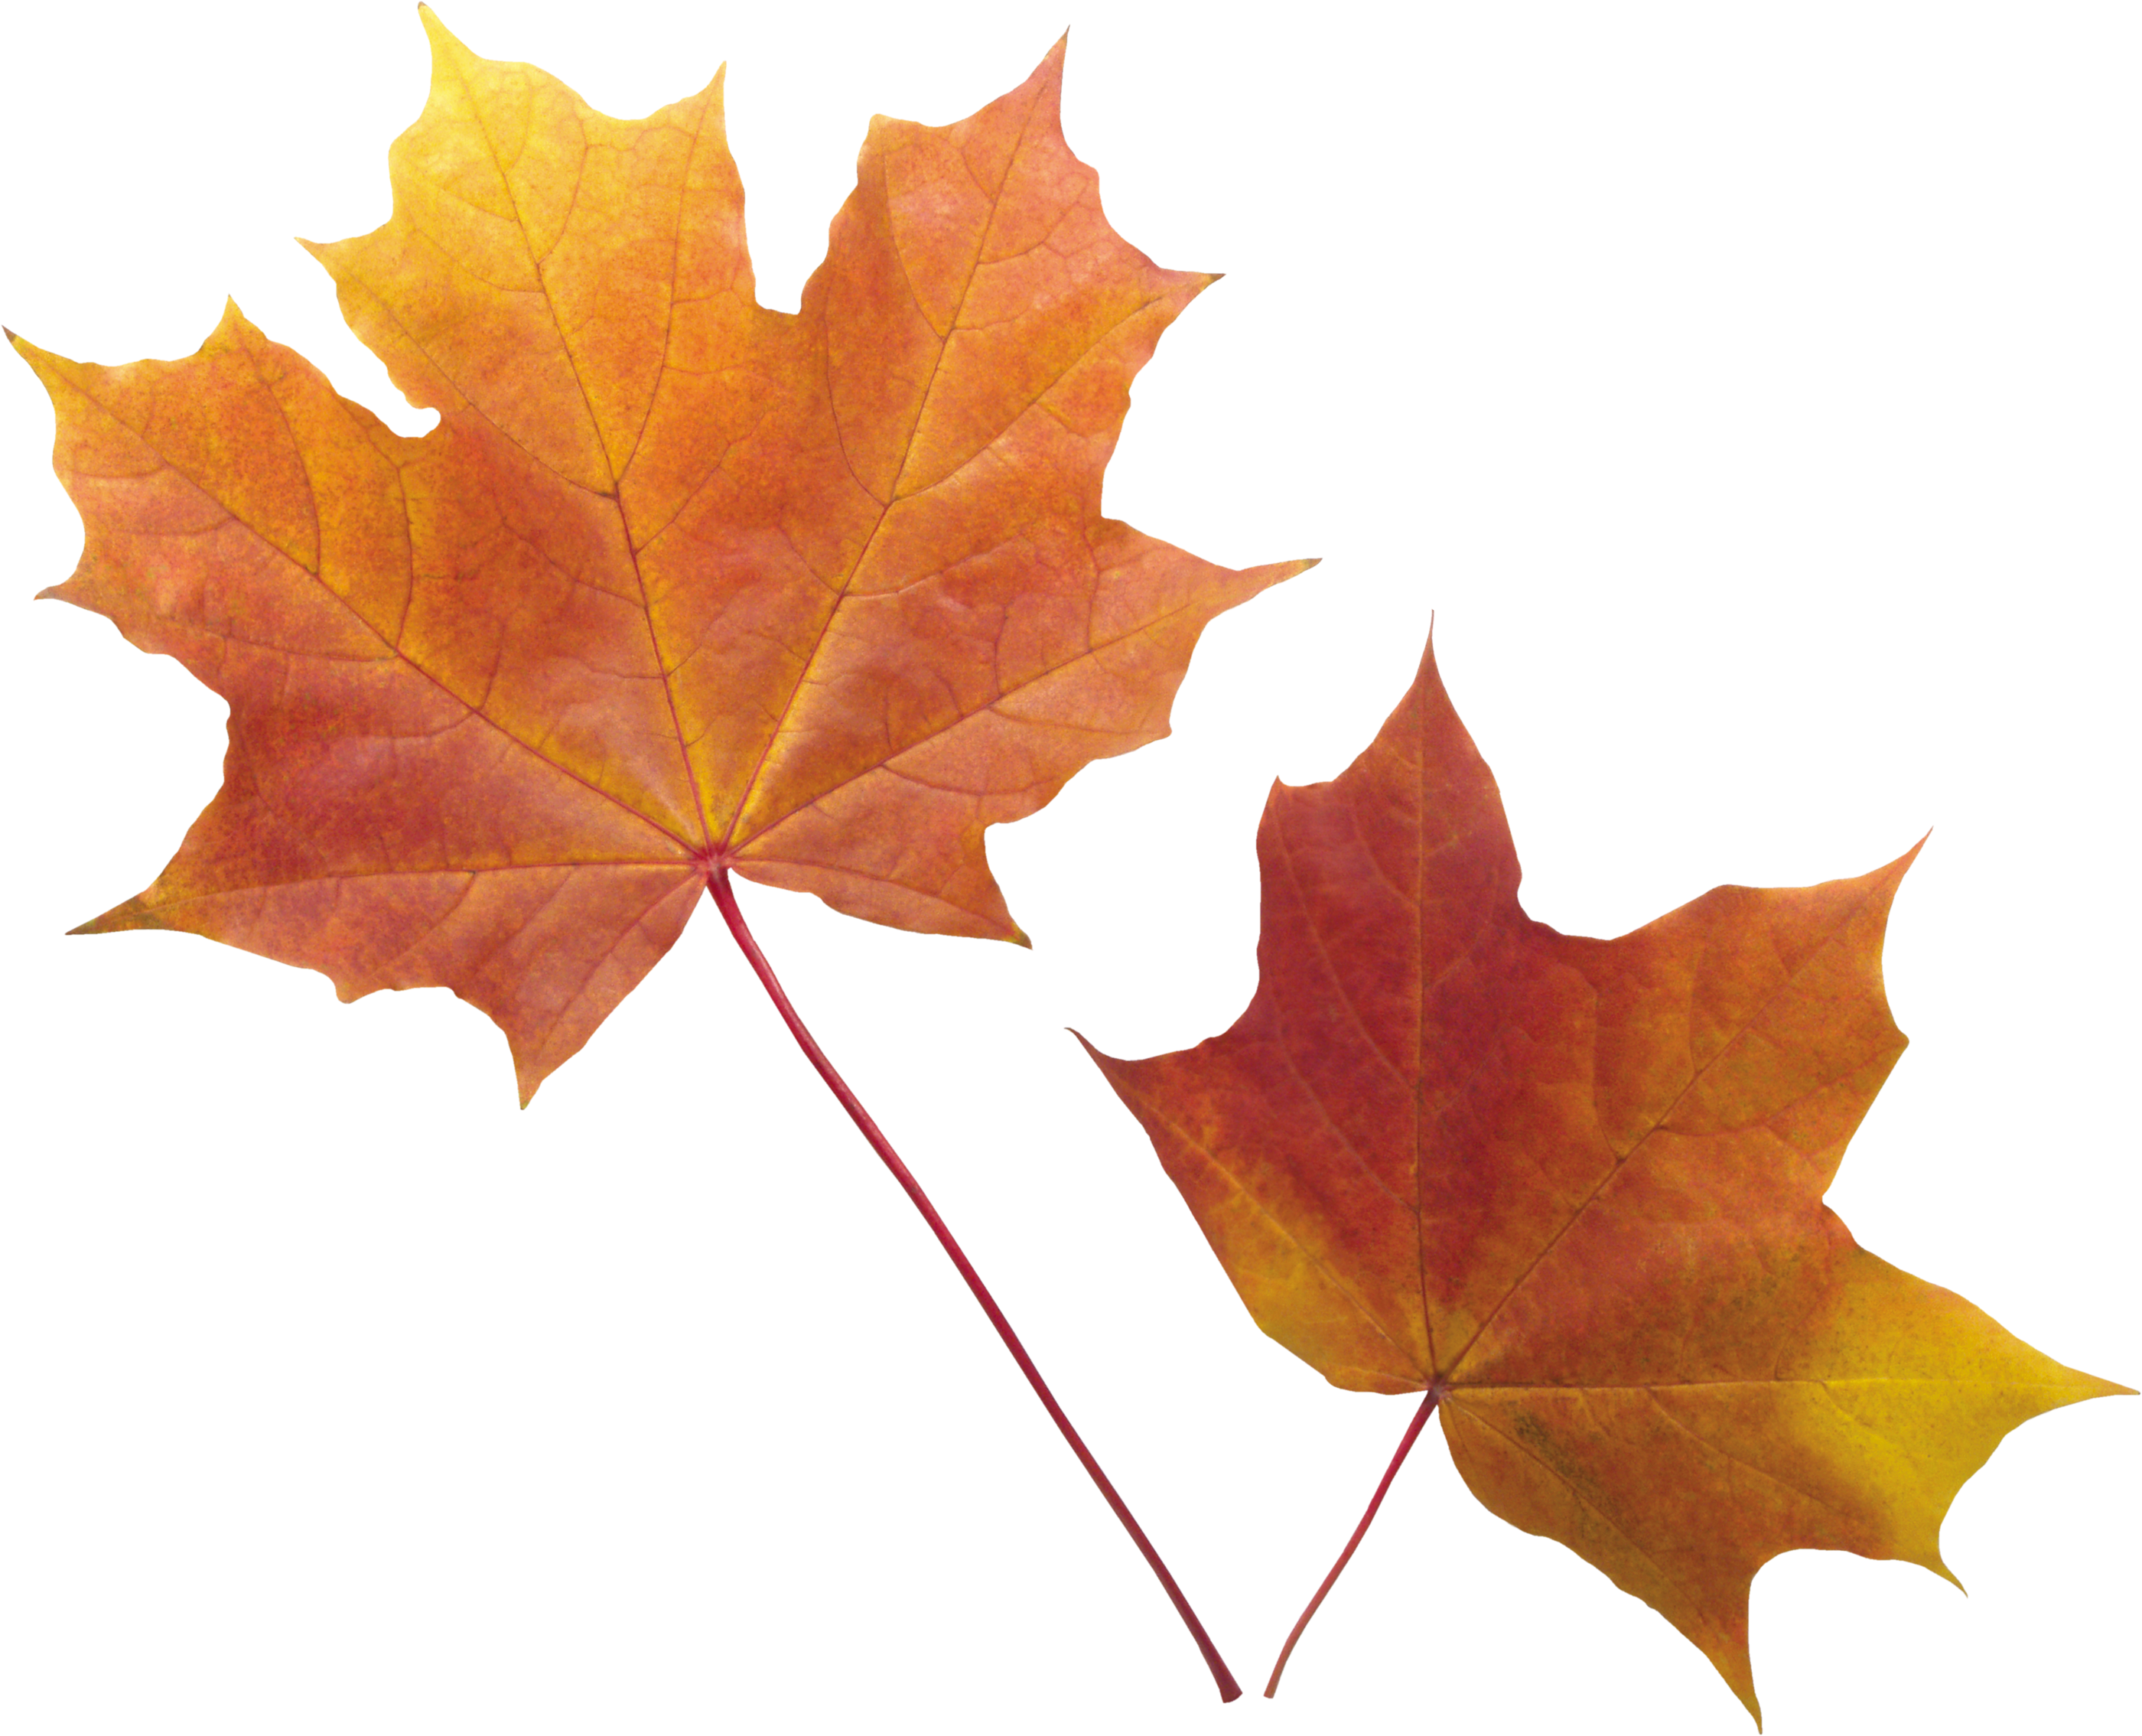 Fall background png. Autumn leaf image purepng